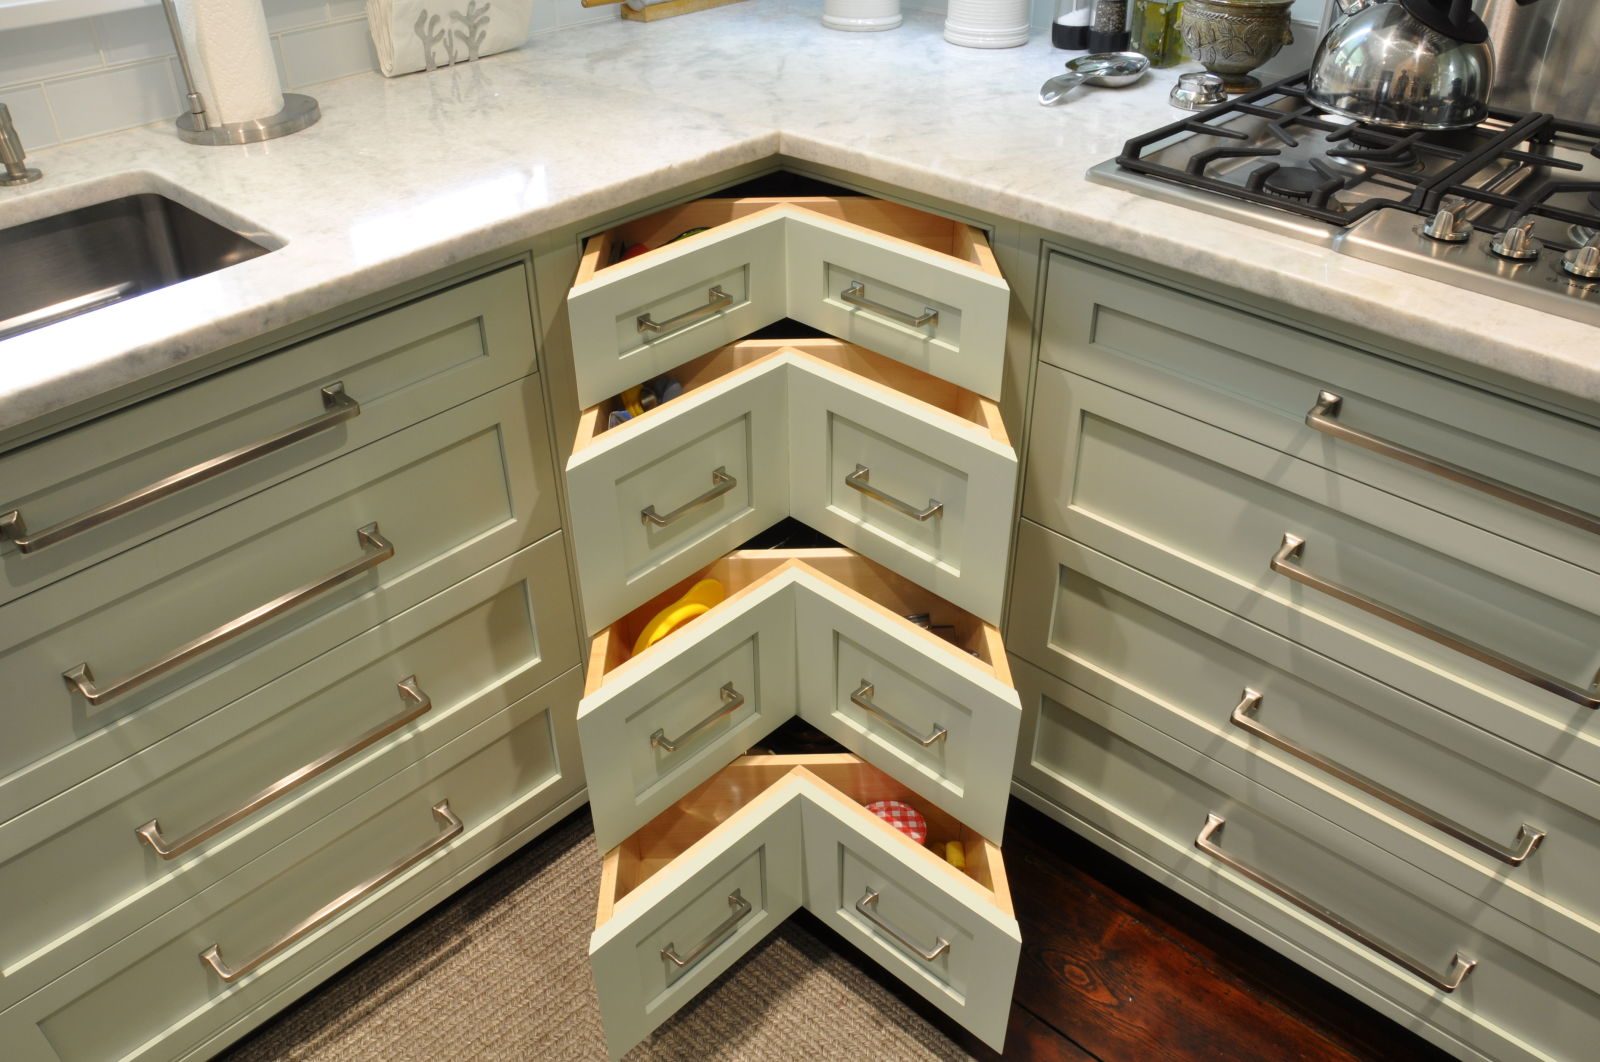 Kitchen corner cabinet wasted space - Kitchen Corner Cabinet Wasted Space 56